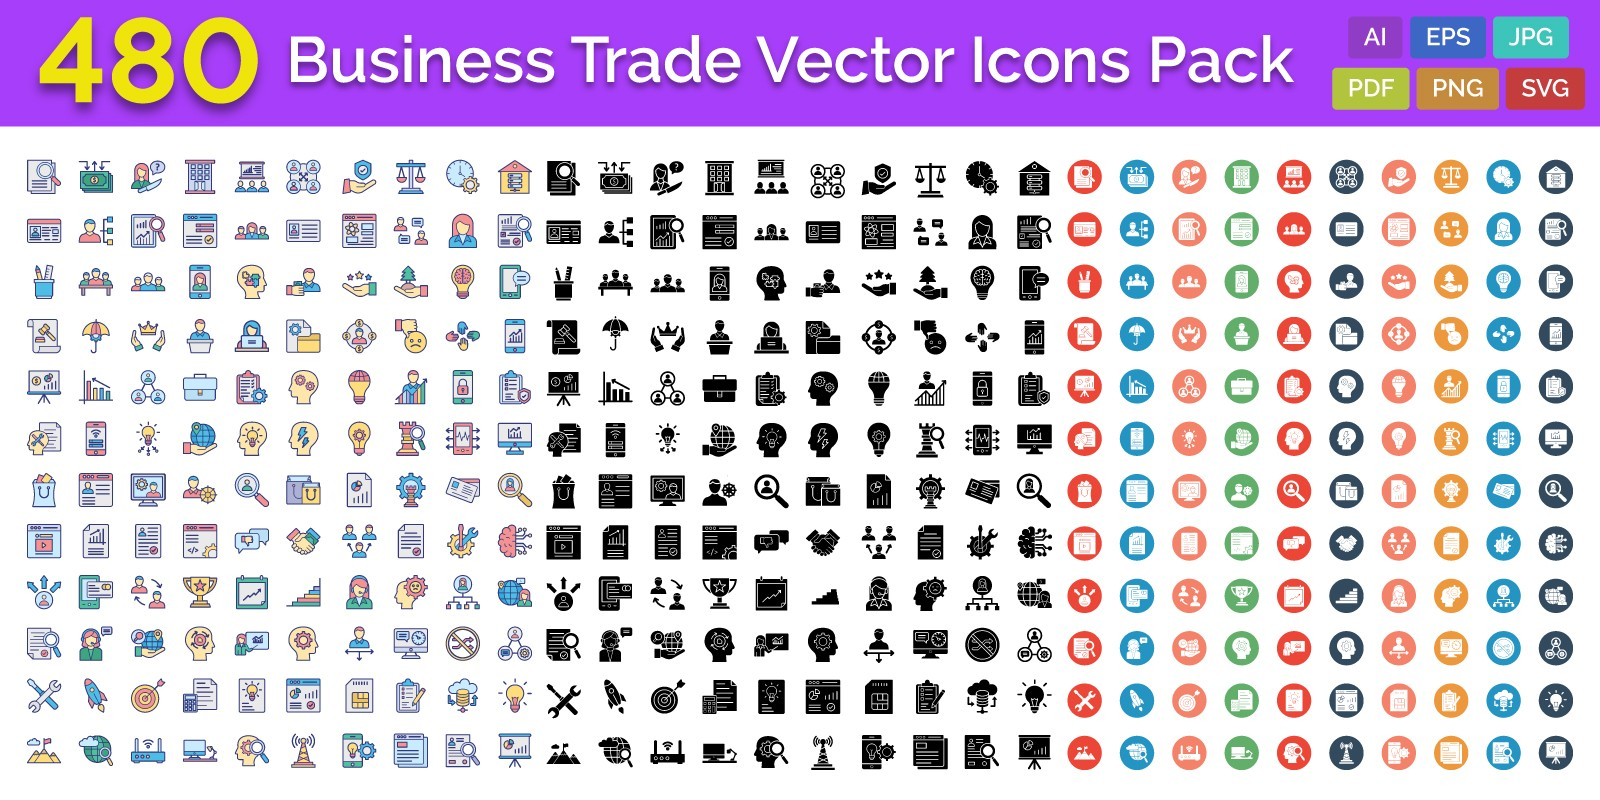 480 Business Trade Vector Icons Pack